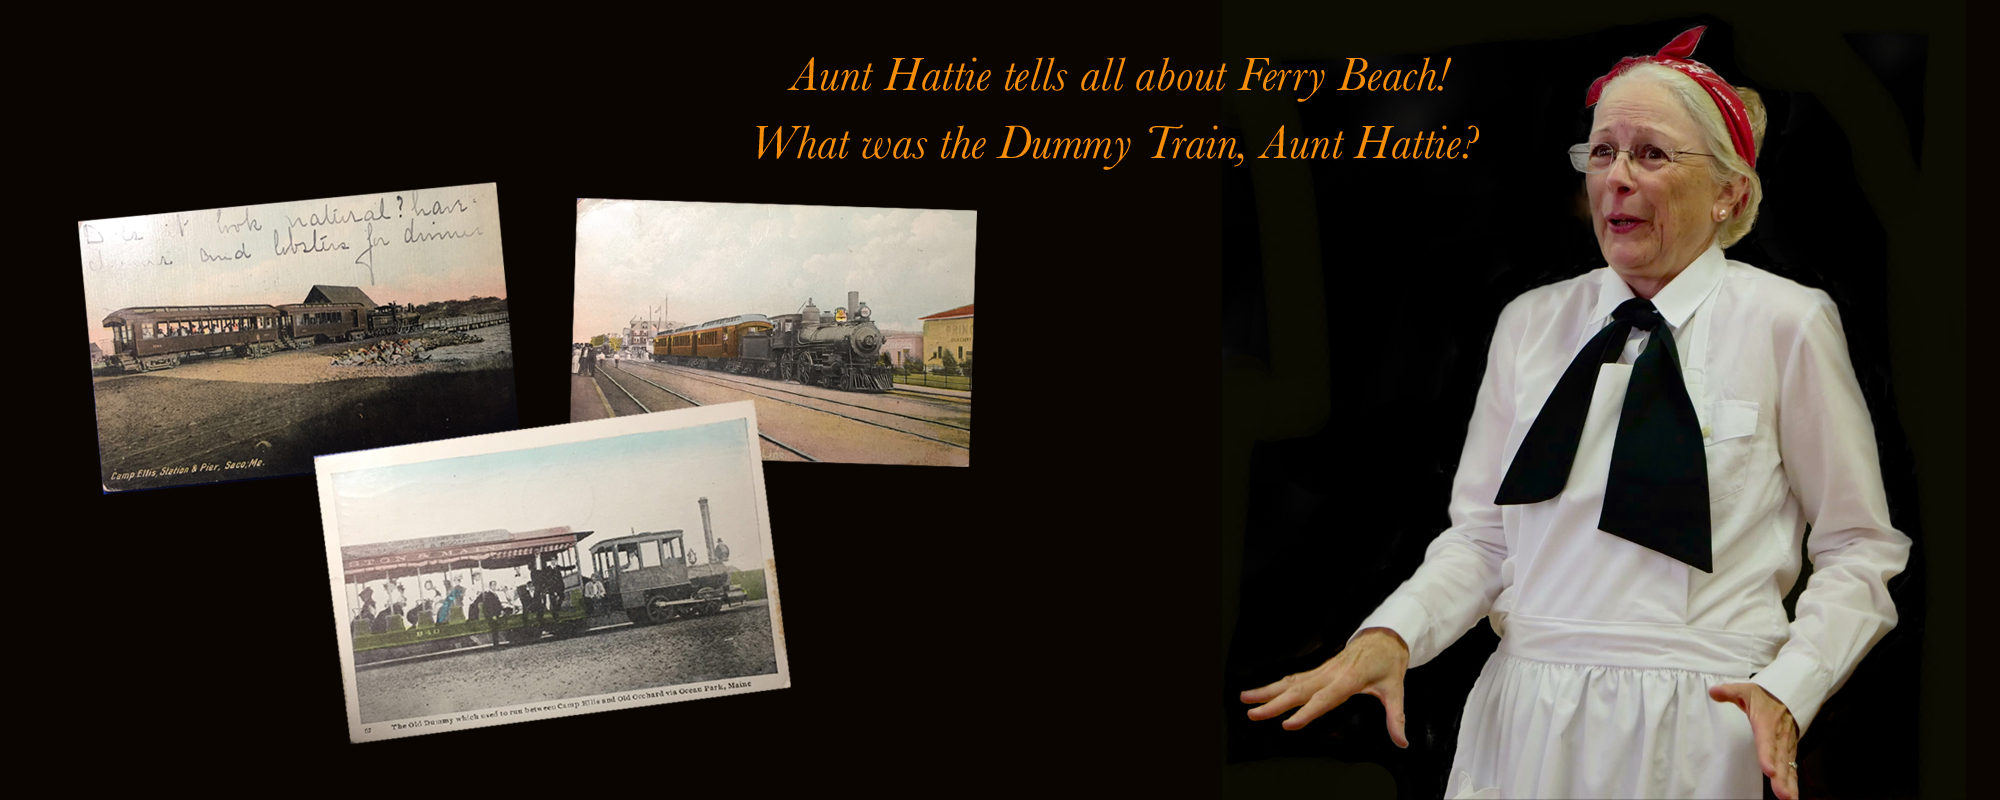 Jude Lamb, storyteller, as Aunt Hattie. Dummy Train postcard images.